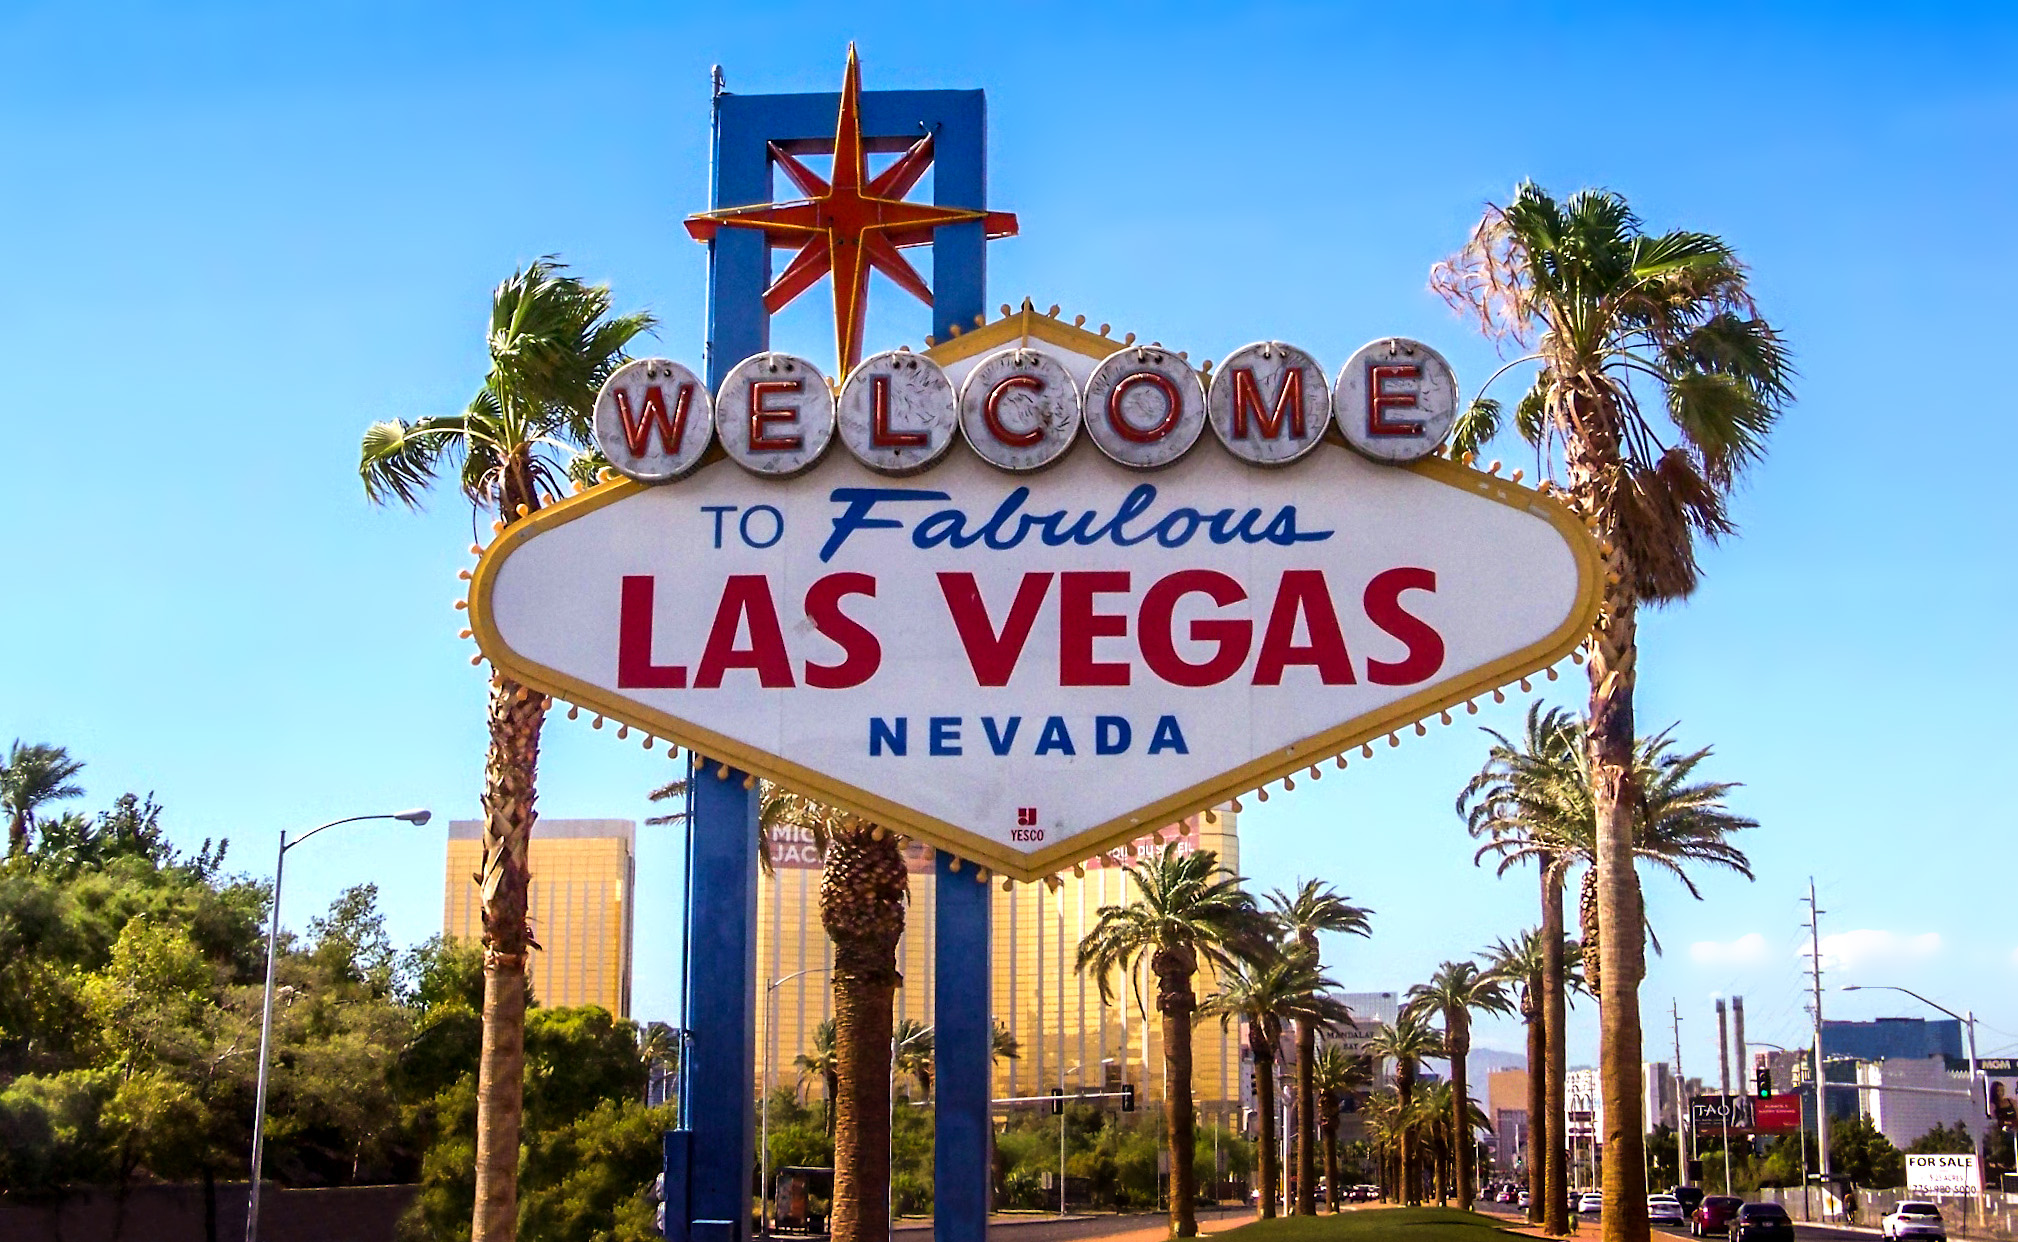 The famous Las Vegas sign which greets thousands of tourists each year.